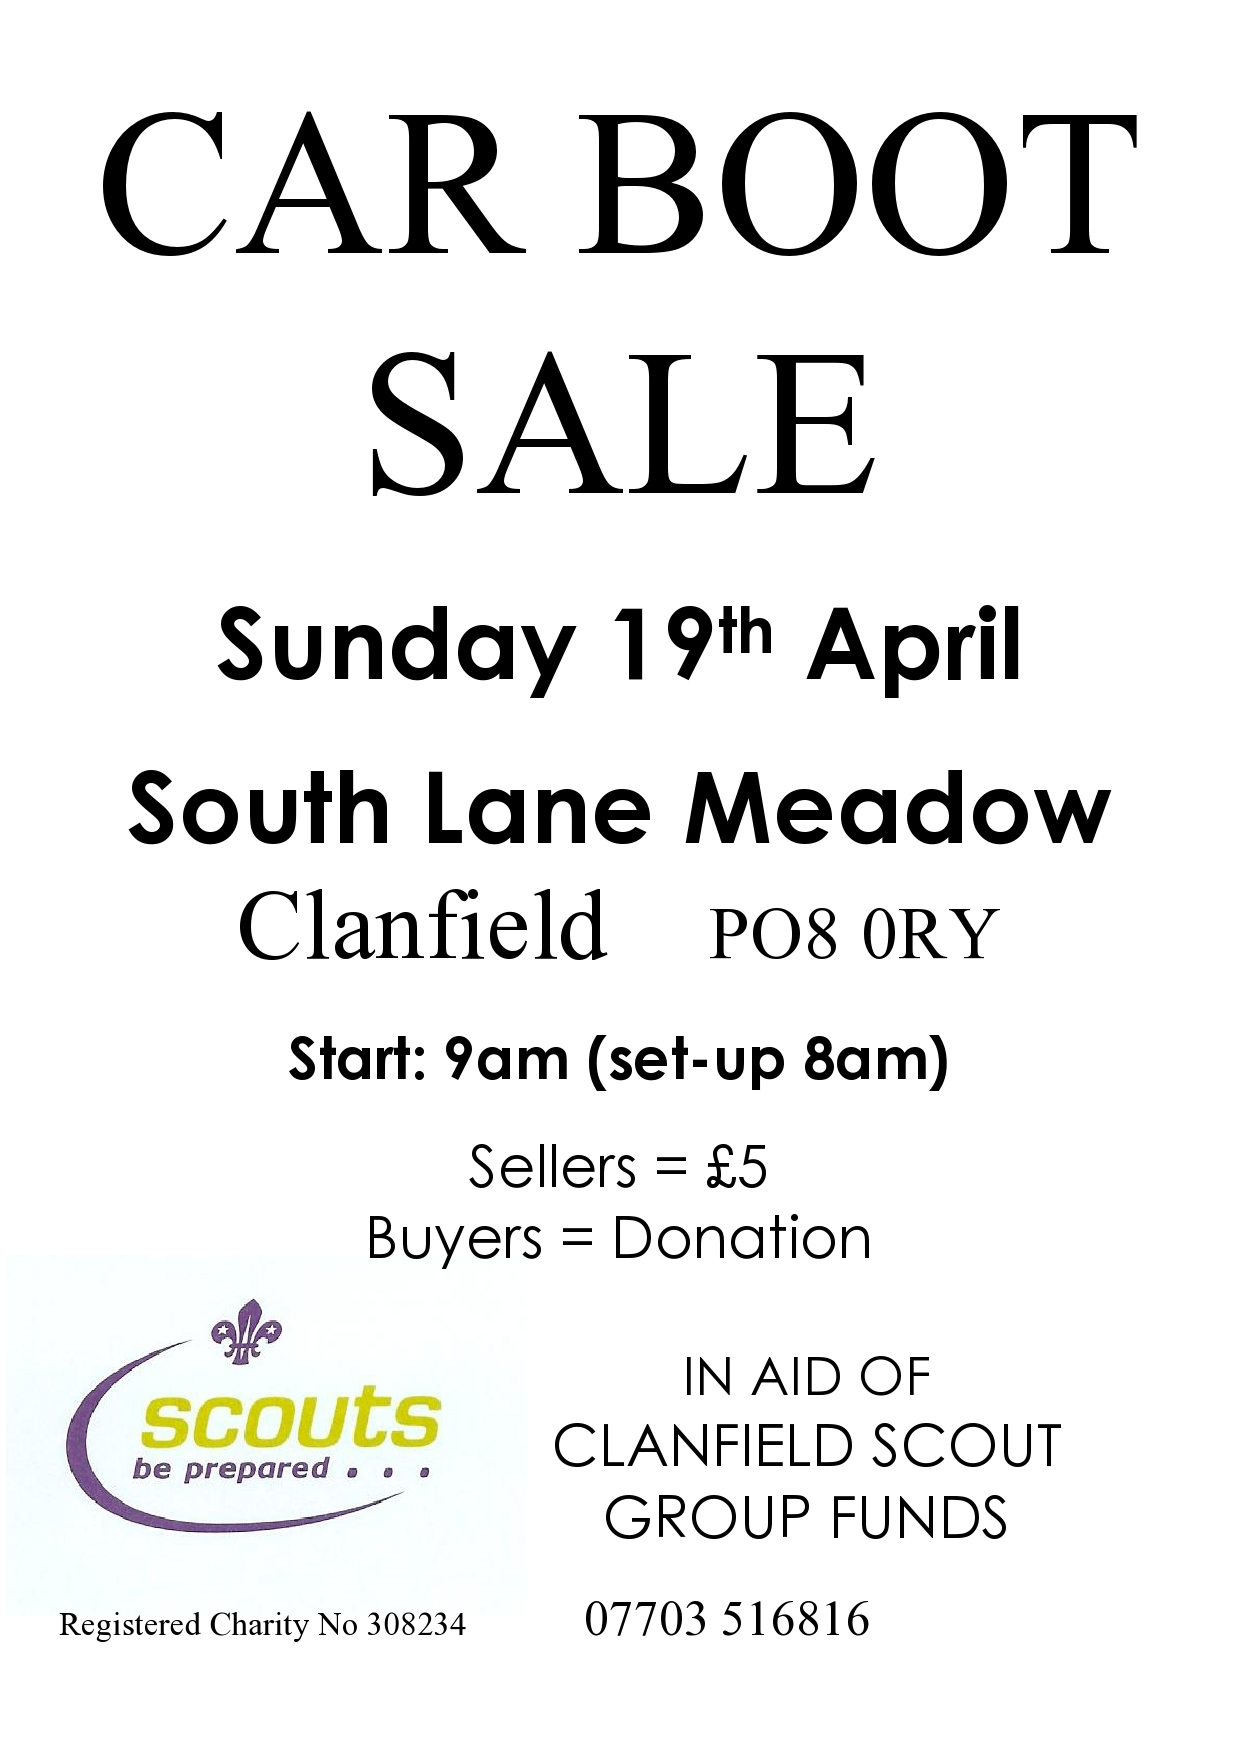 Clanfield Scouts Car Boot Sale